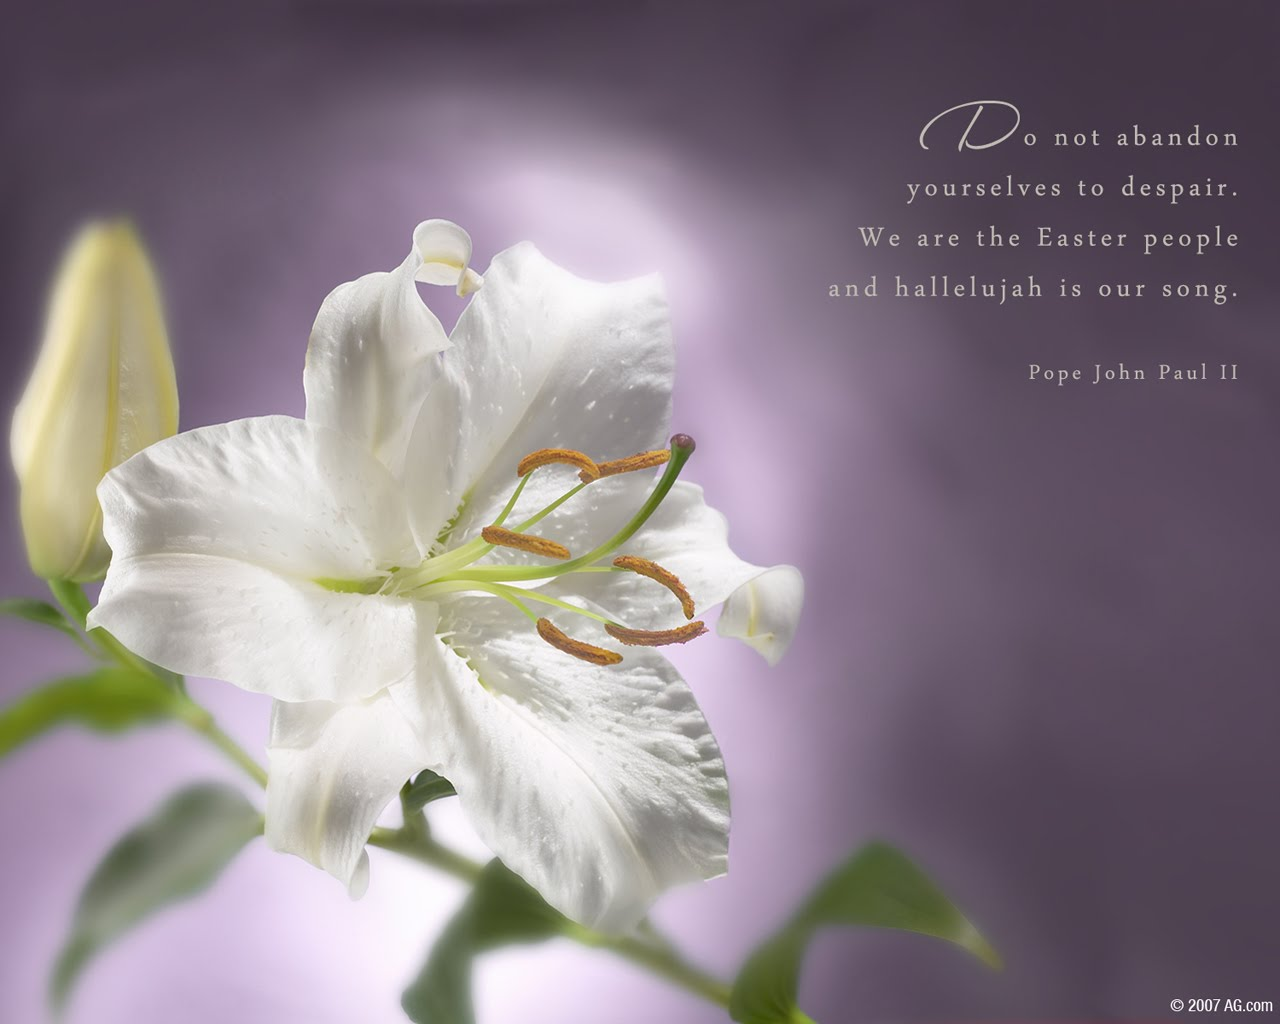 1000 Images About Easter Wallpaper On Pinterest: 1000+ Images About Pope John Paul II On Pinterest